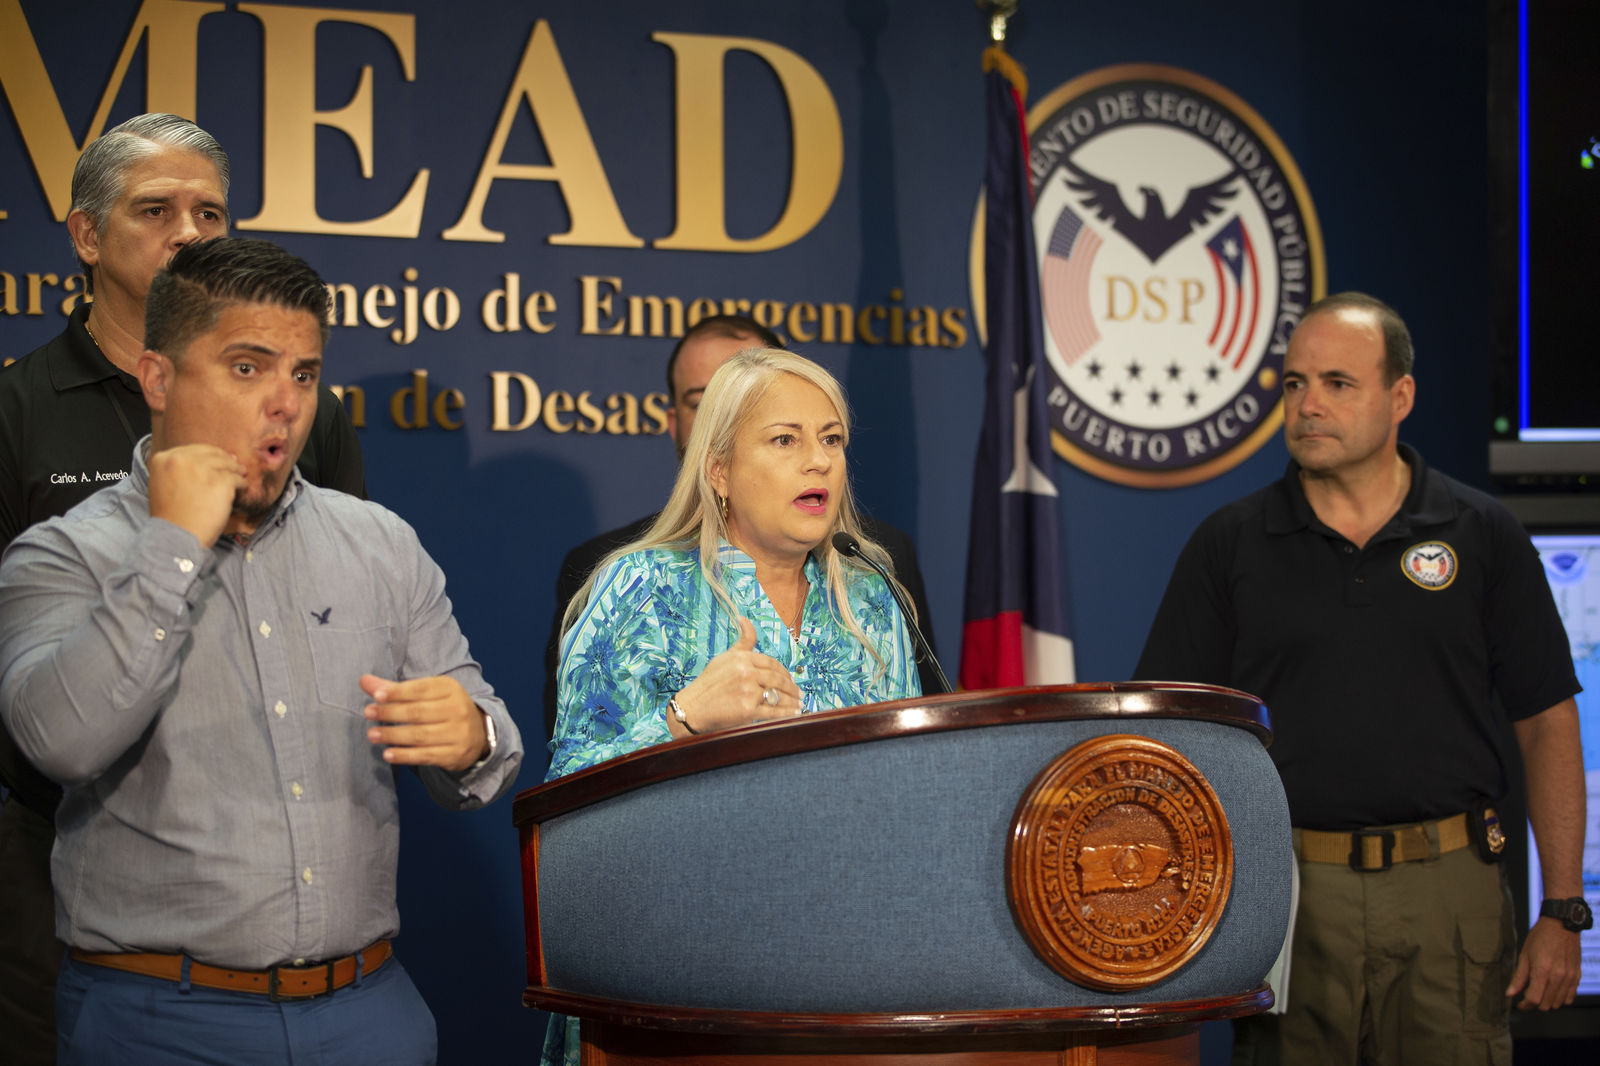 Puerto Rico Gov. Wanda Vazquez speaks during a press conference in San Juan, Puerto Rico, Wednesday, Aug. 28, 2019.{ } (AP Photo/Gianfranco Gaglione)